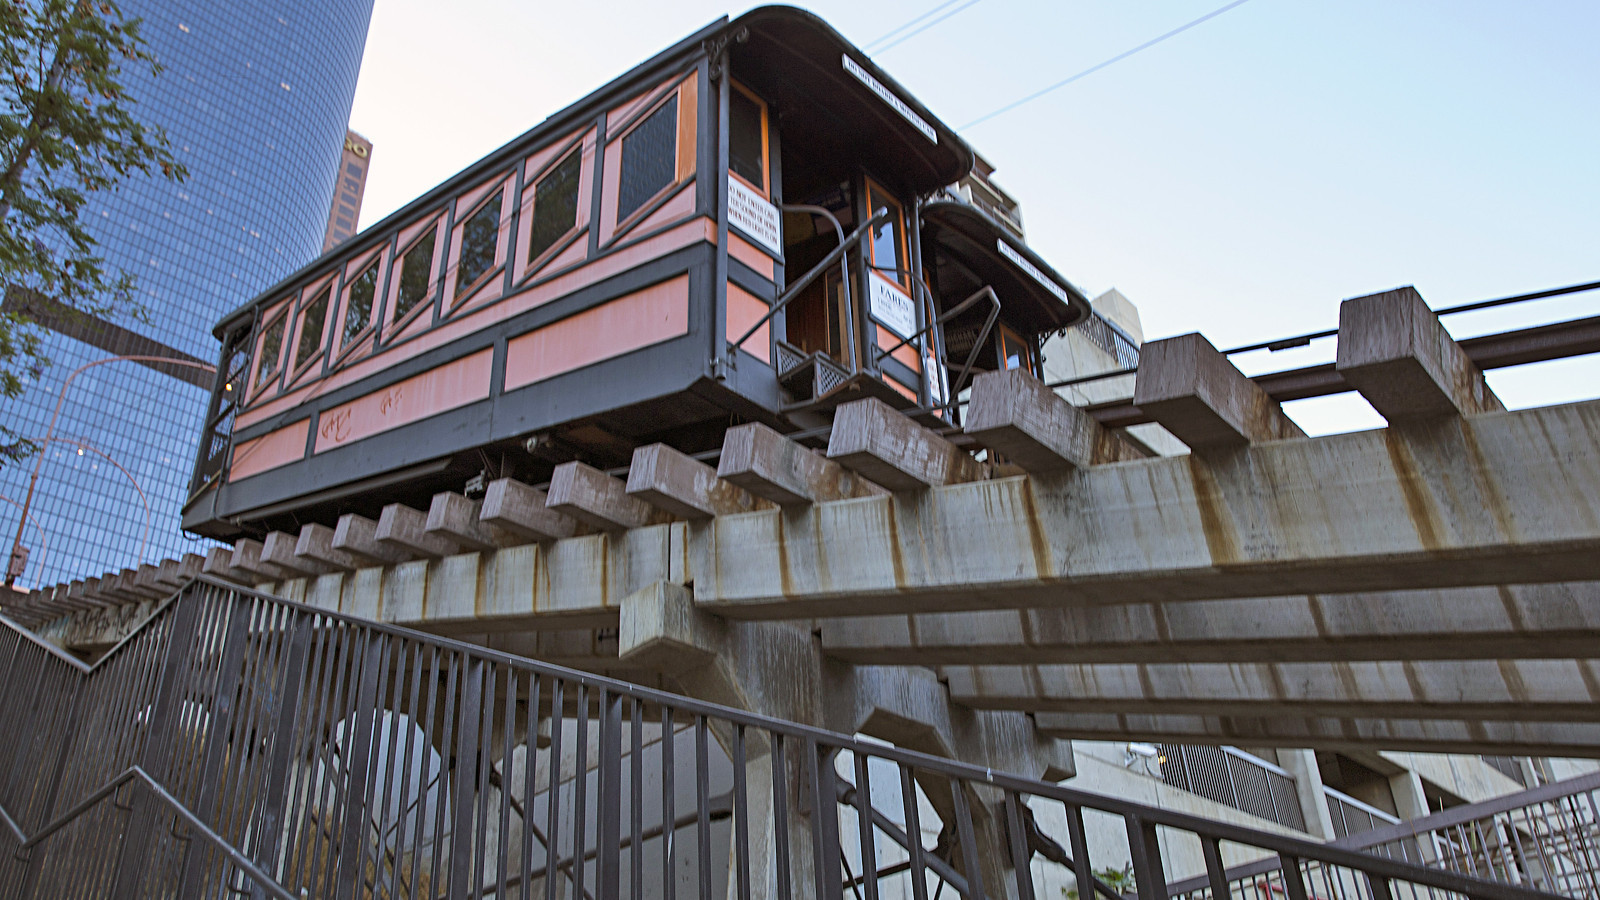 Abandoned three years ago, Angels Flight now target of graffiti vandals